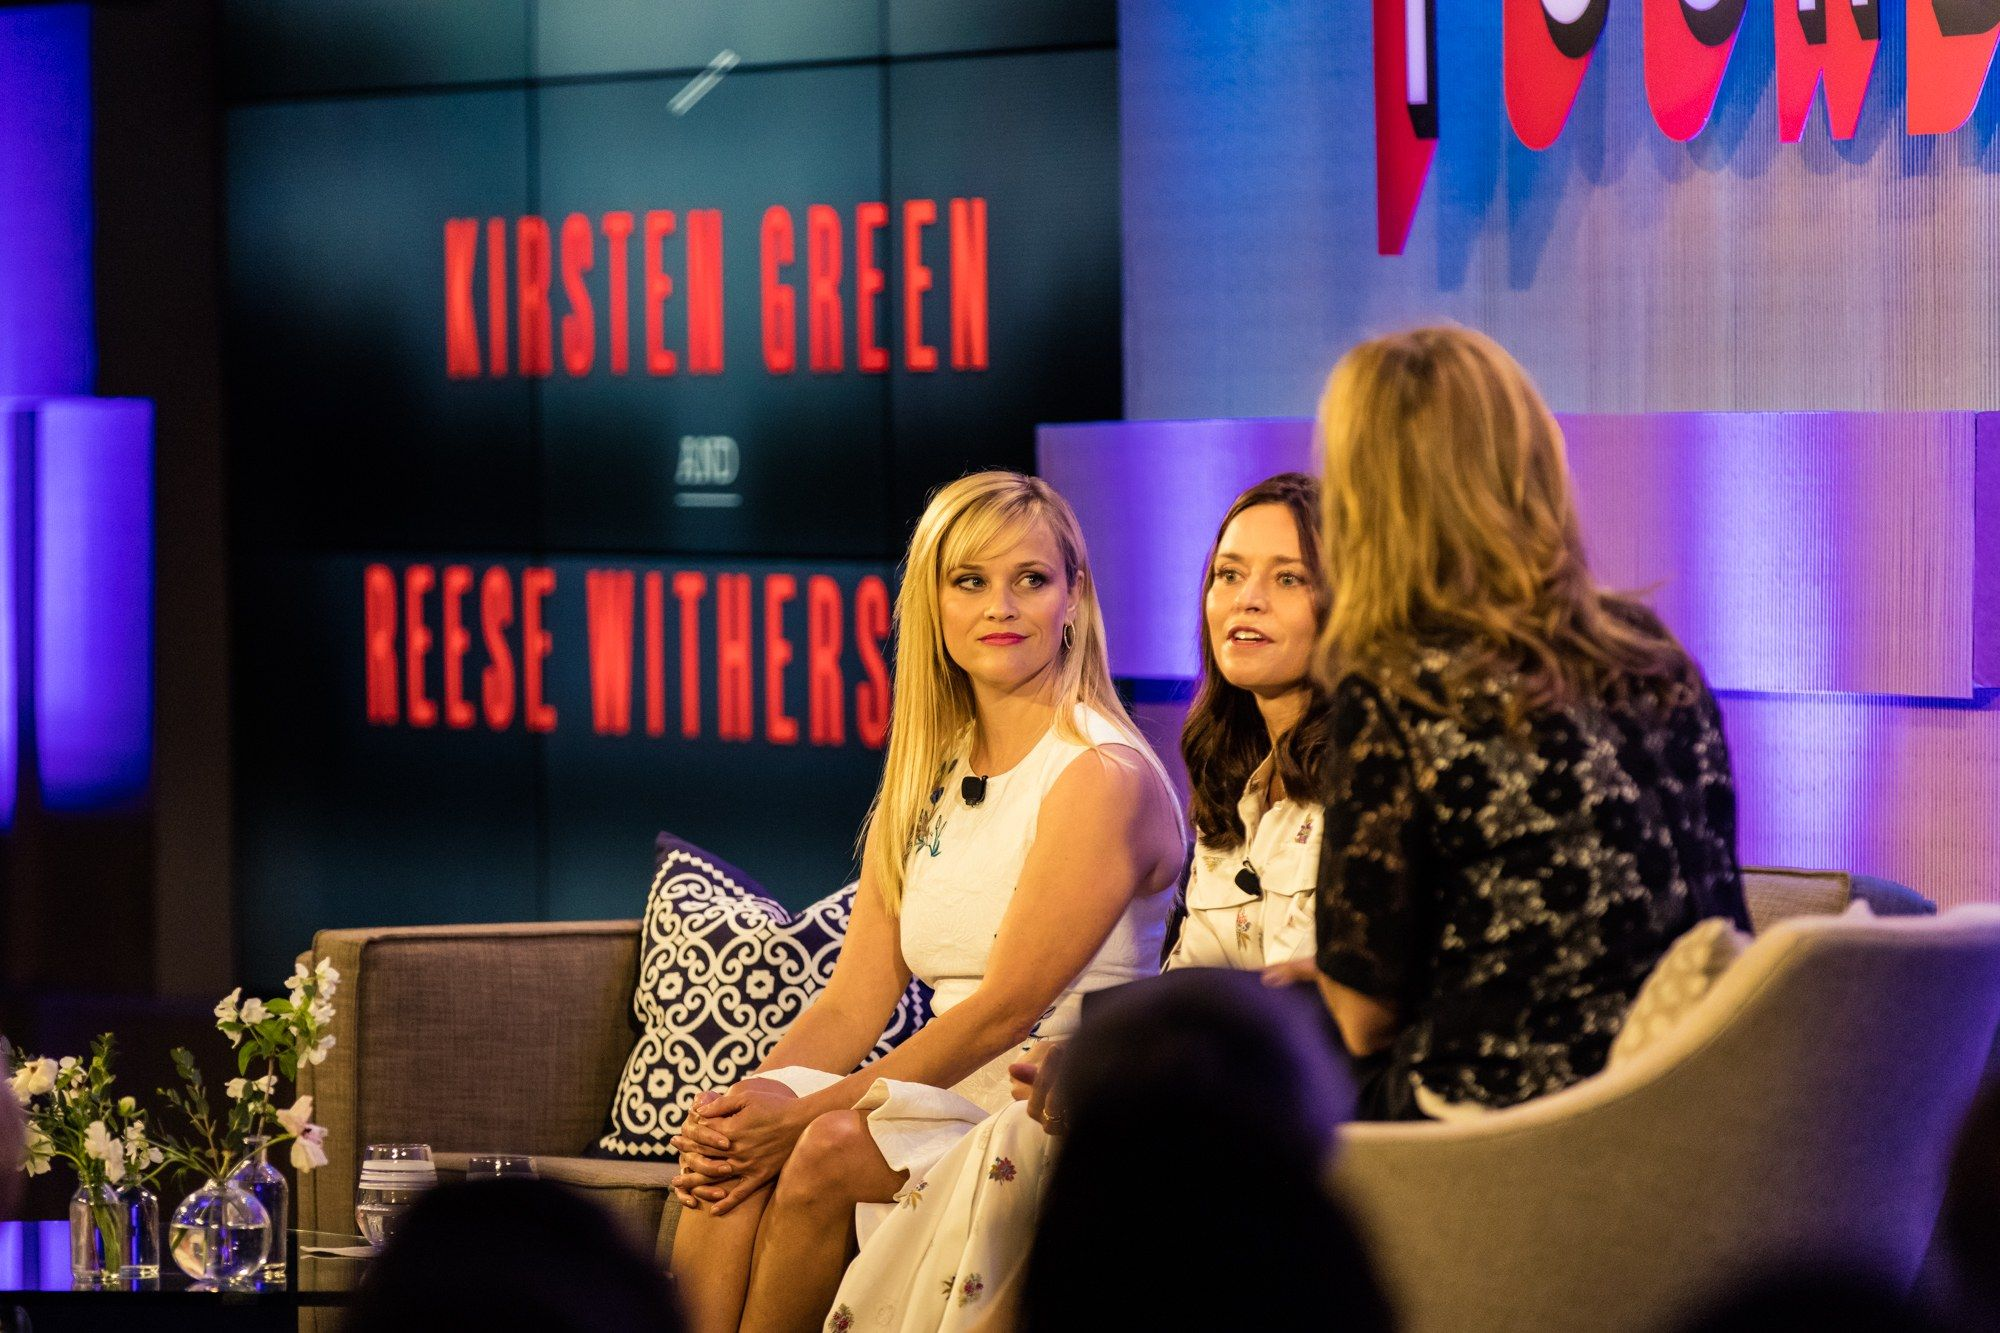 Reese Witherspoon, Founder of Draper James, Kirsten Green, Founder and Managing Director of Forerunner Ventures, and Krista Smith, Executive West Coast Editor of Vanity Fair. Photograph by Justin Bishop.